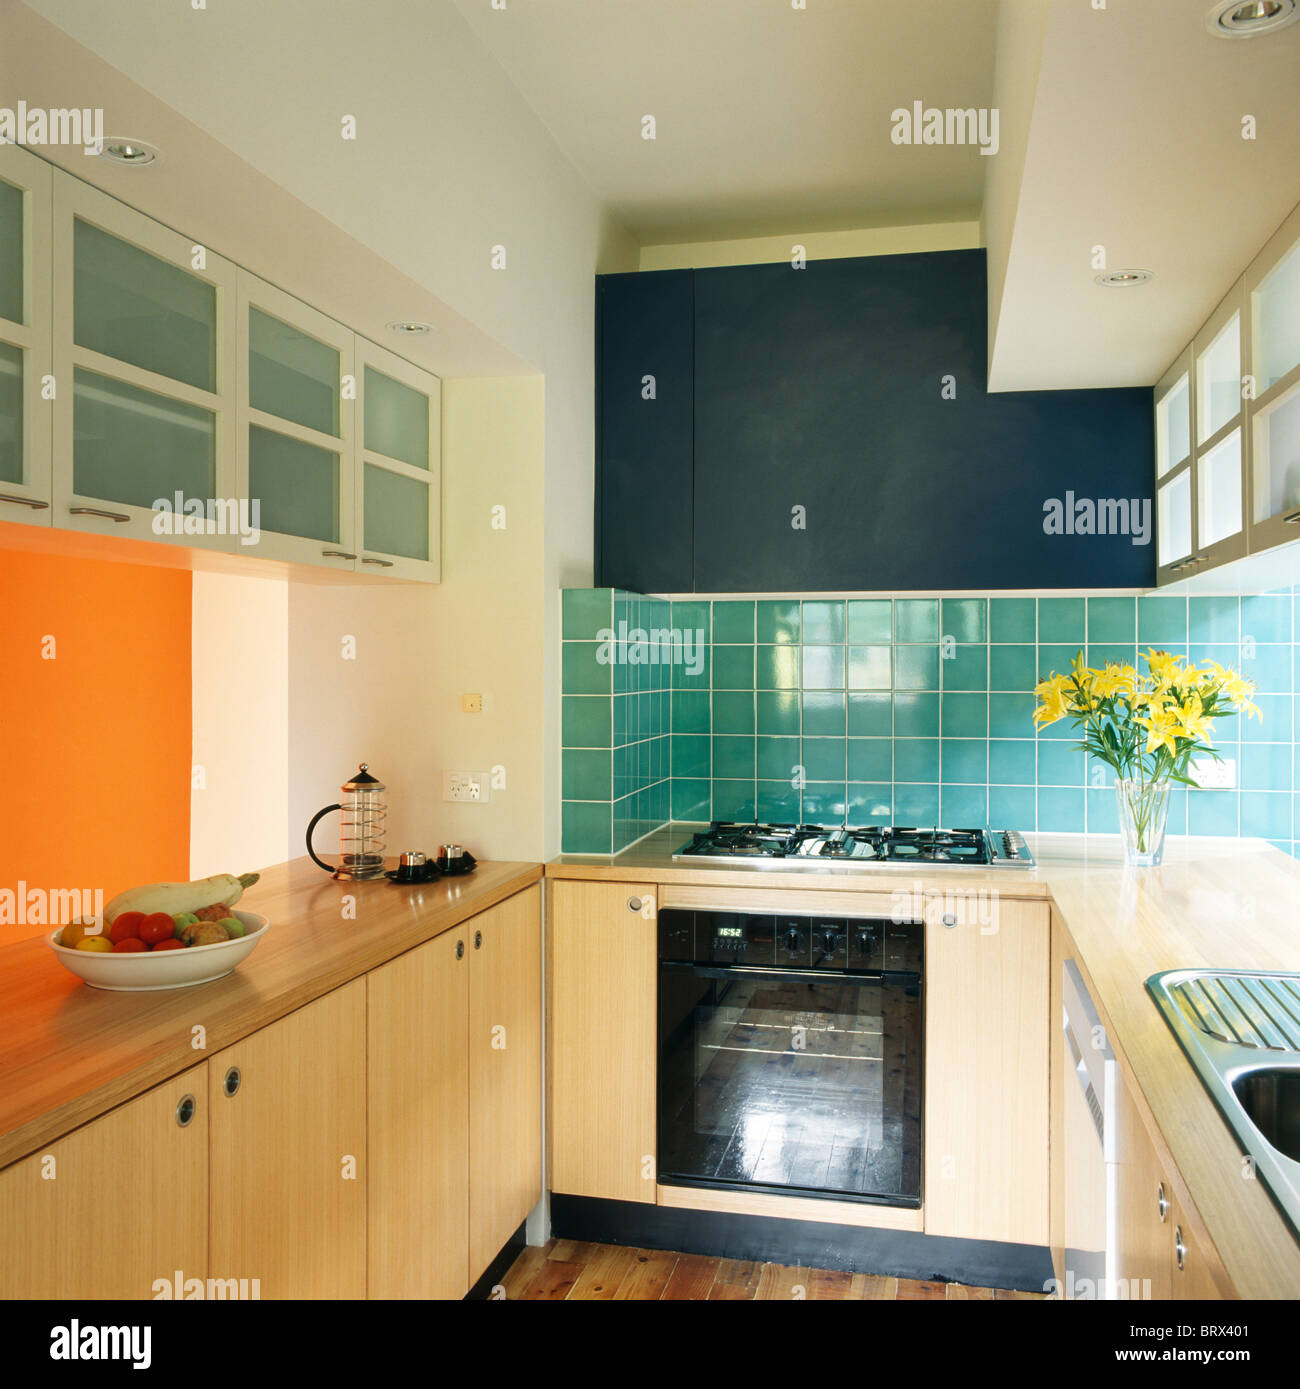 Modern Kitchen Units modern kitchen - turquoise kitchen units & cupboards stock photo